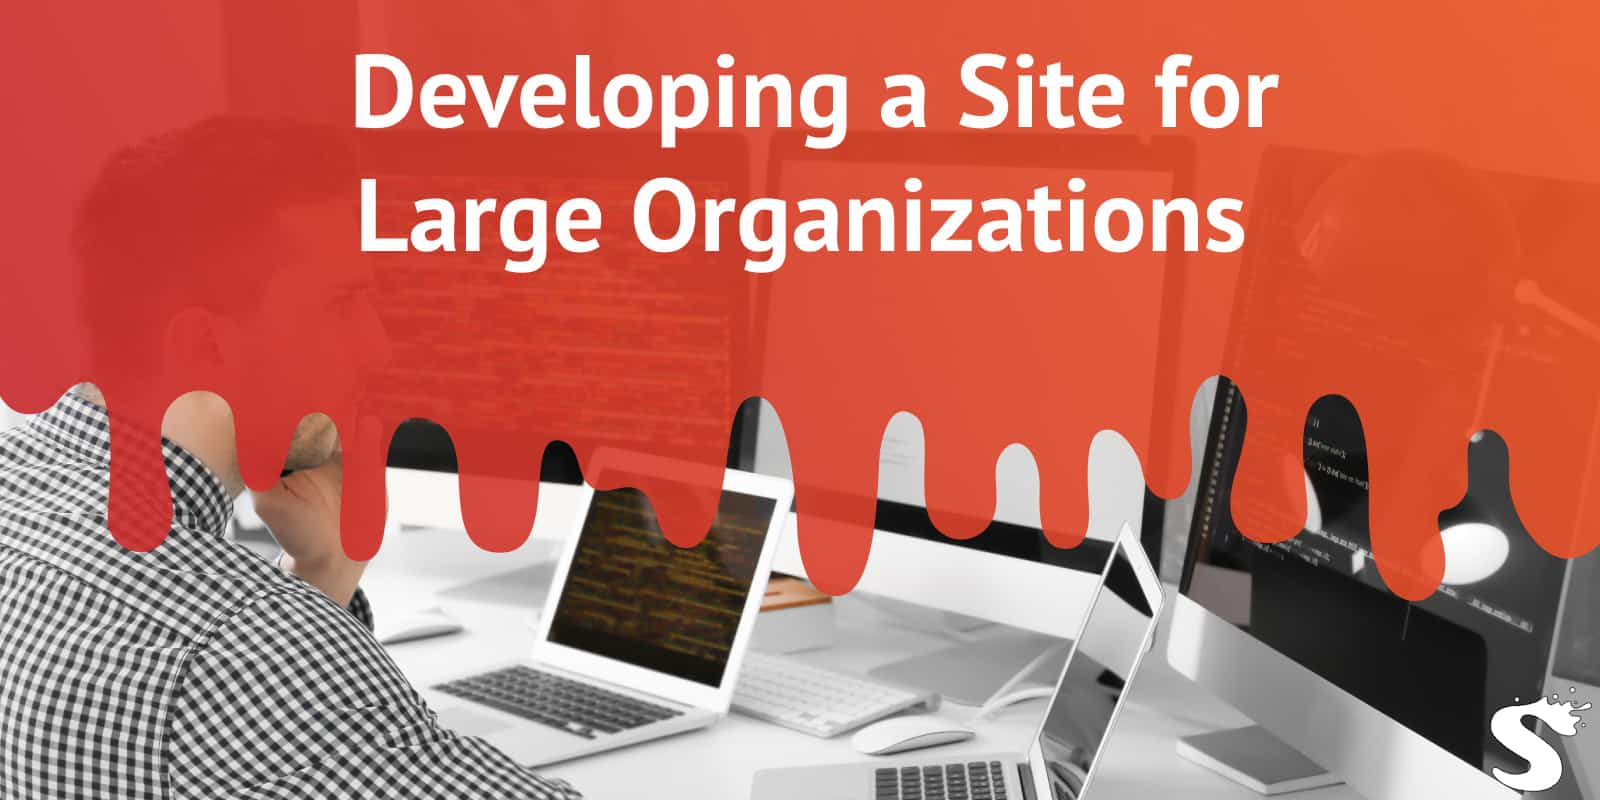 Developing a site for large organizations